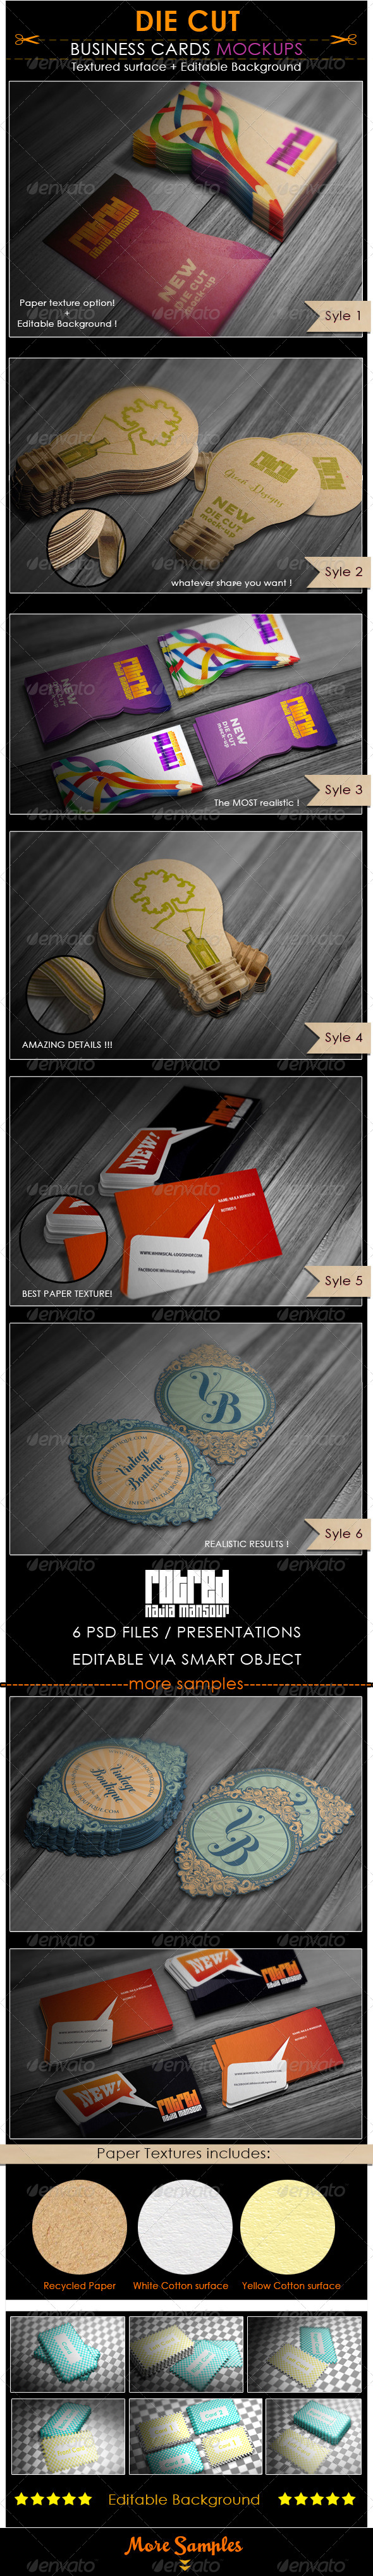 Die cut business cards mockup awesome mock ups pinterest die cut business cards mockup reheart Images